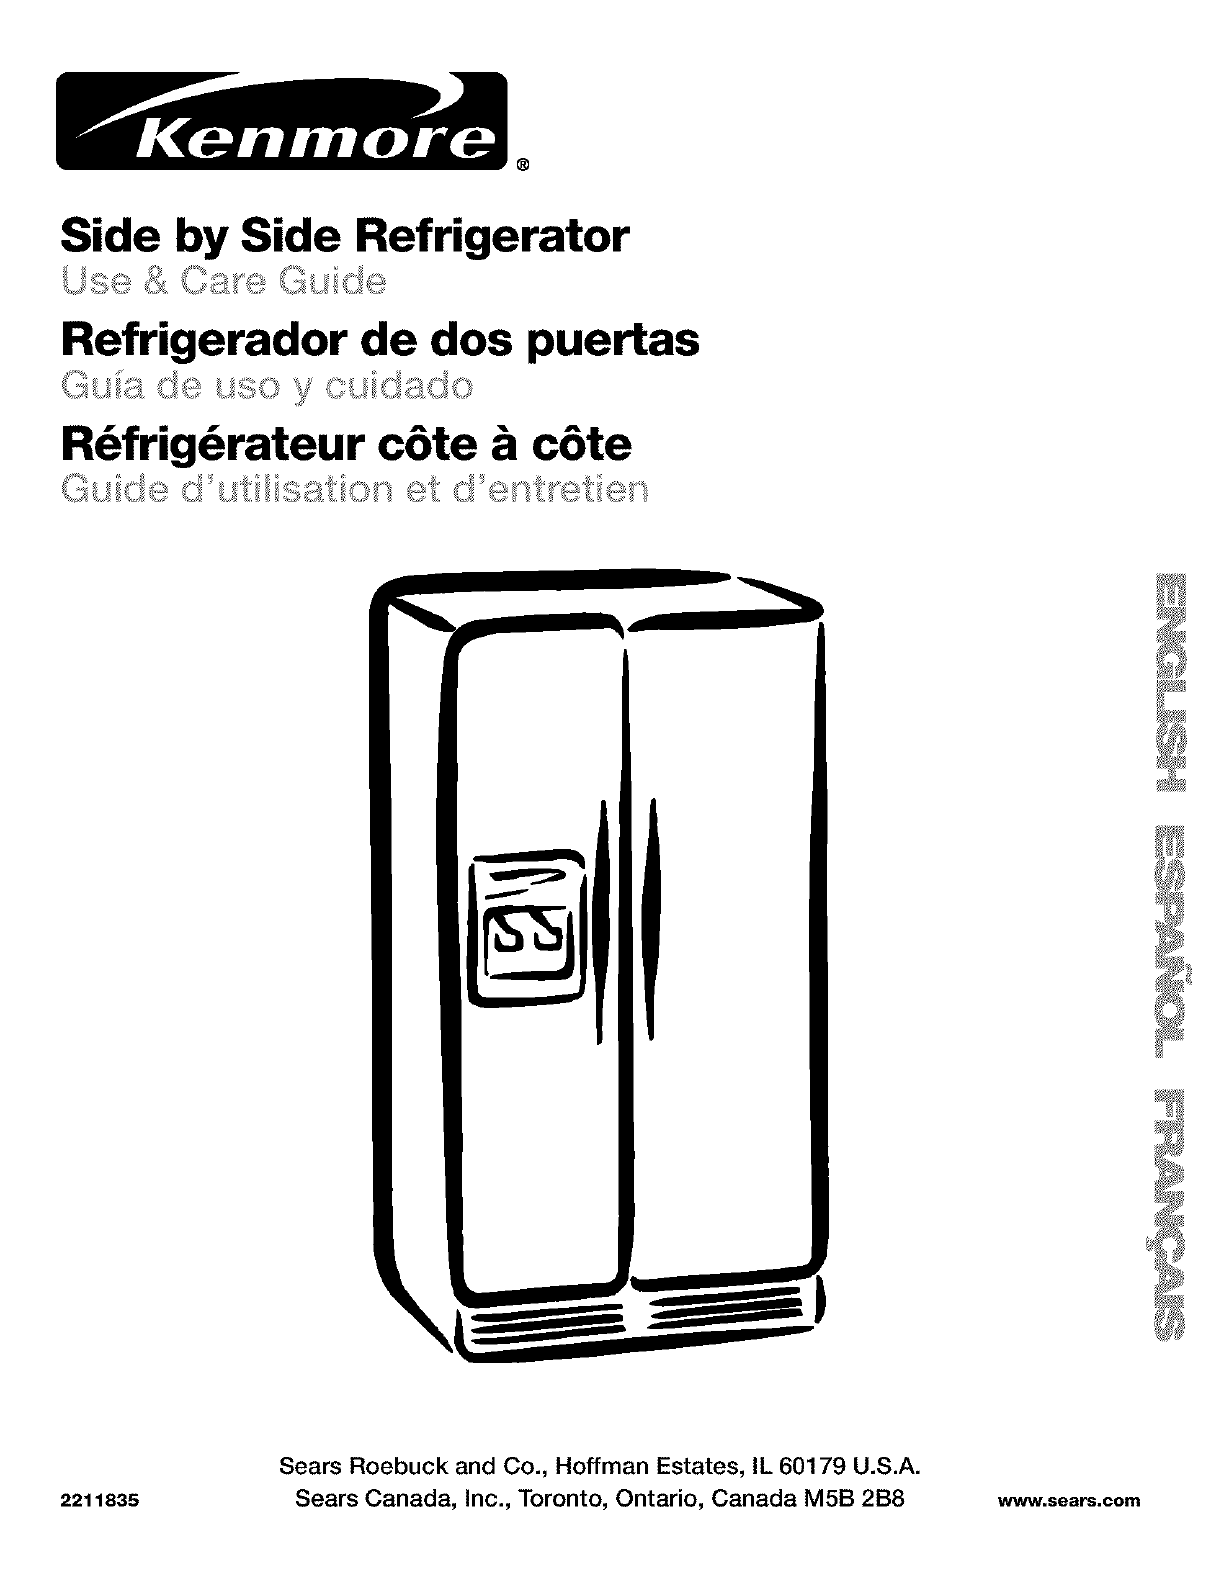 7f7c209c 3a82 4c01 aecb 31a71b630337 bg1 kenmore refrigerator 106 user guide manualsonline com kenmore side by side refrigerator wiring diagram at eliteediting.co